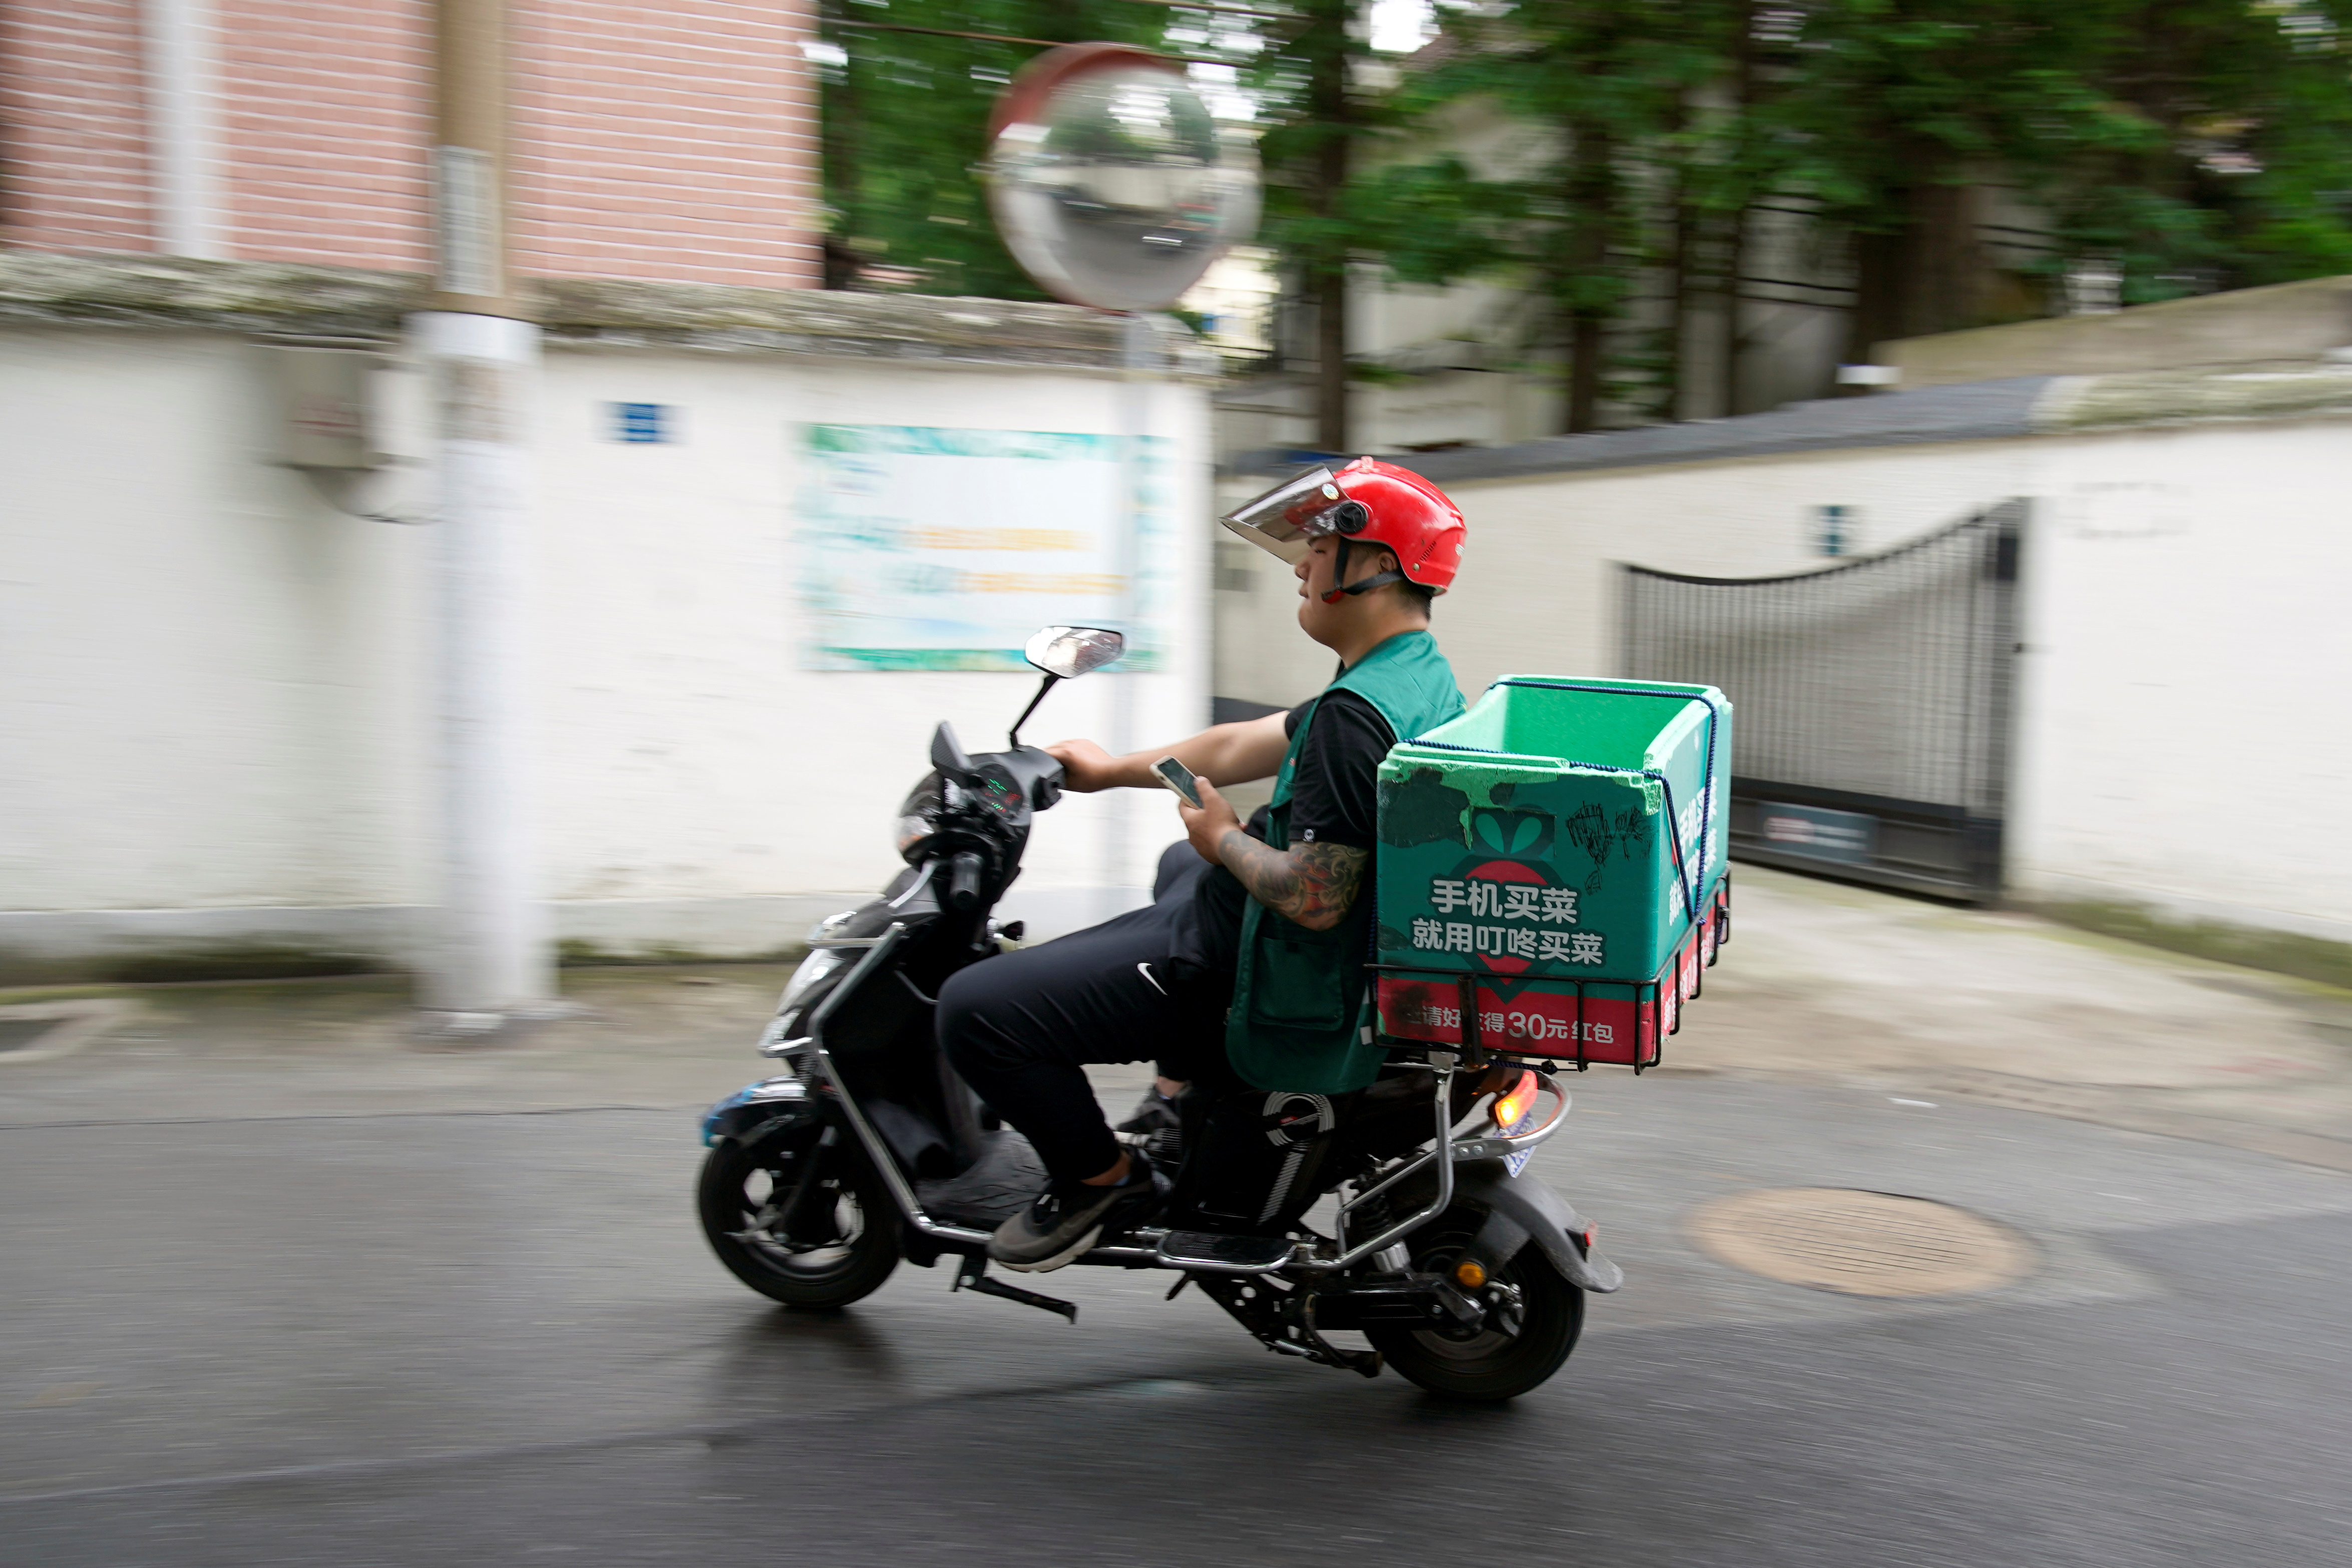 A delivery worker of Chinese online grocery Dingdong Maicai is seen on a street in Shanghai, China June 10, 2021. REUTERS/Aly Song